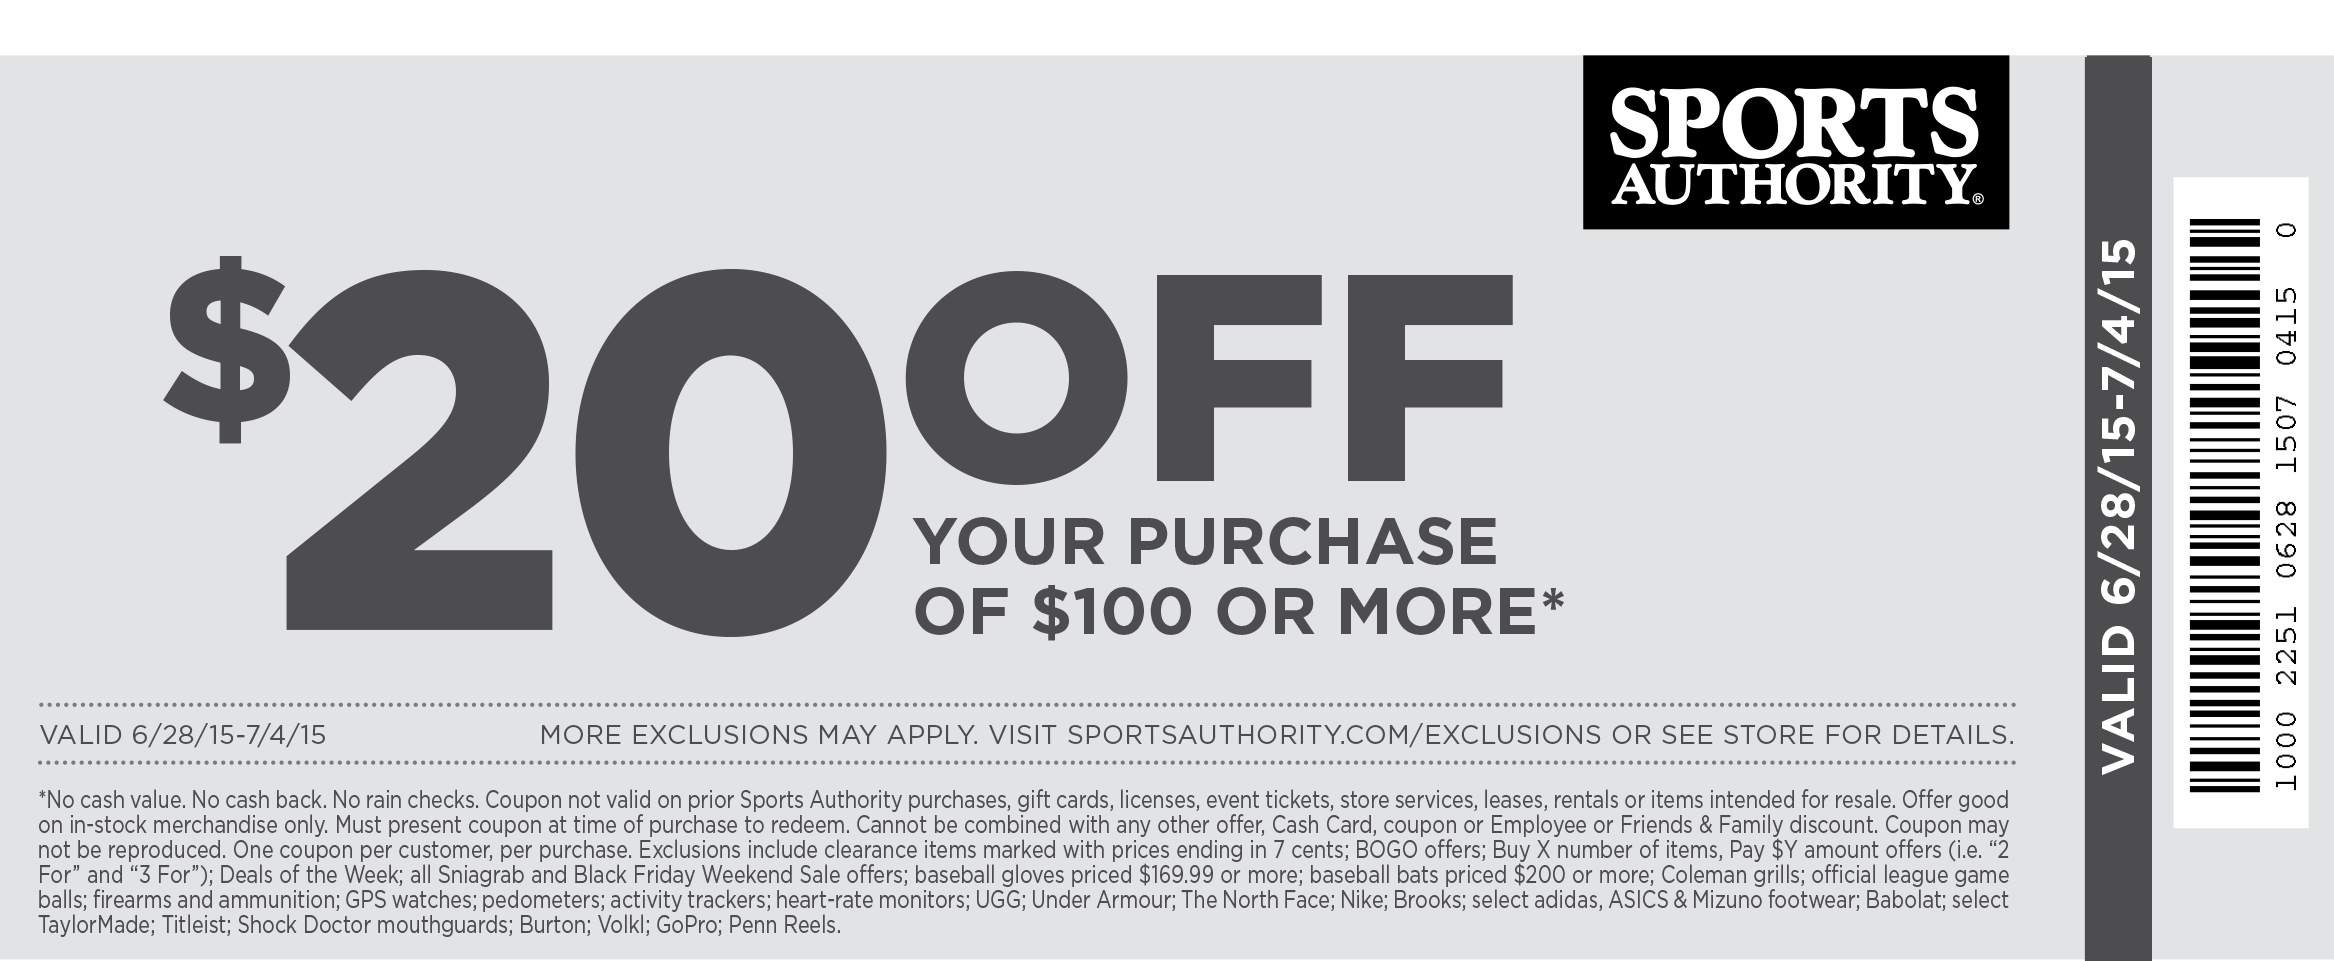 Sports Authority Coupon February 2020 $20 off $100 at Sports Authority, ditto online with free shipping